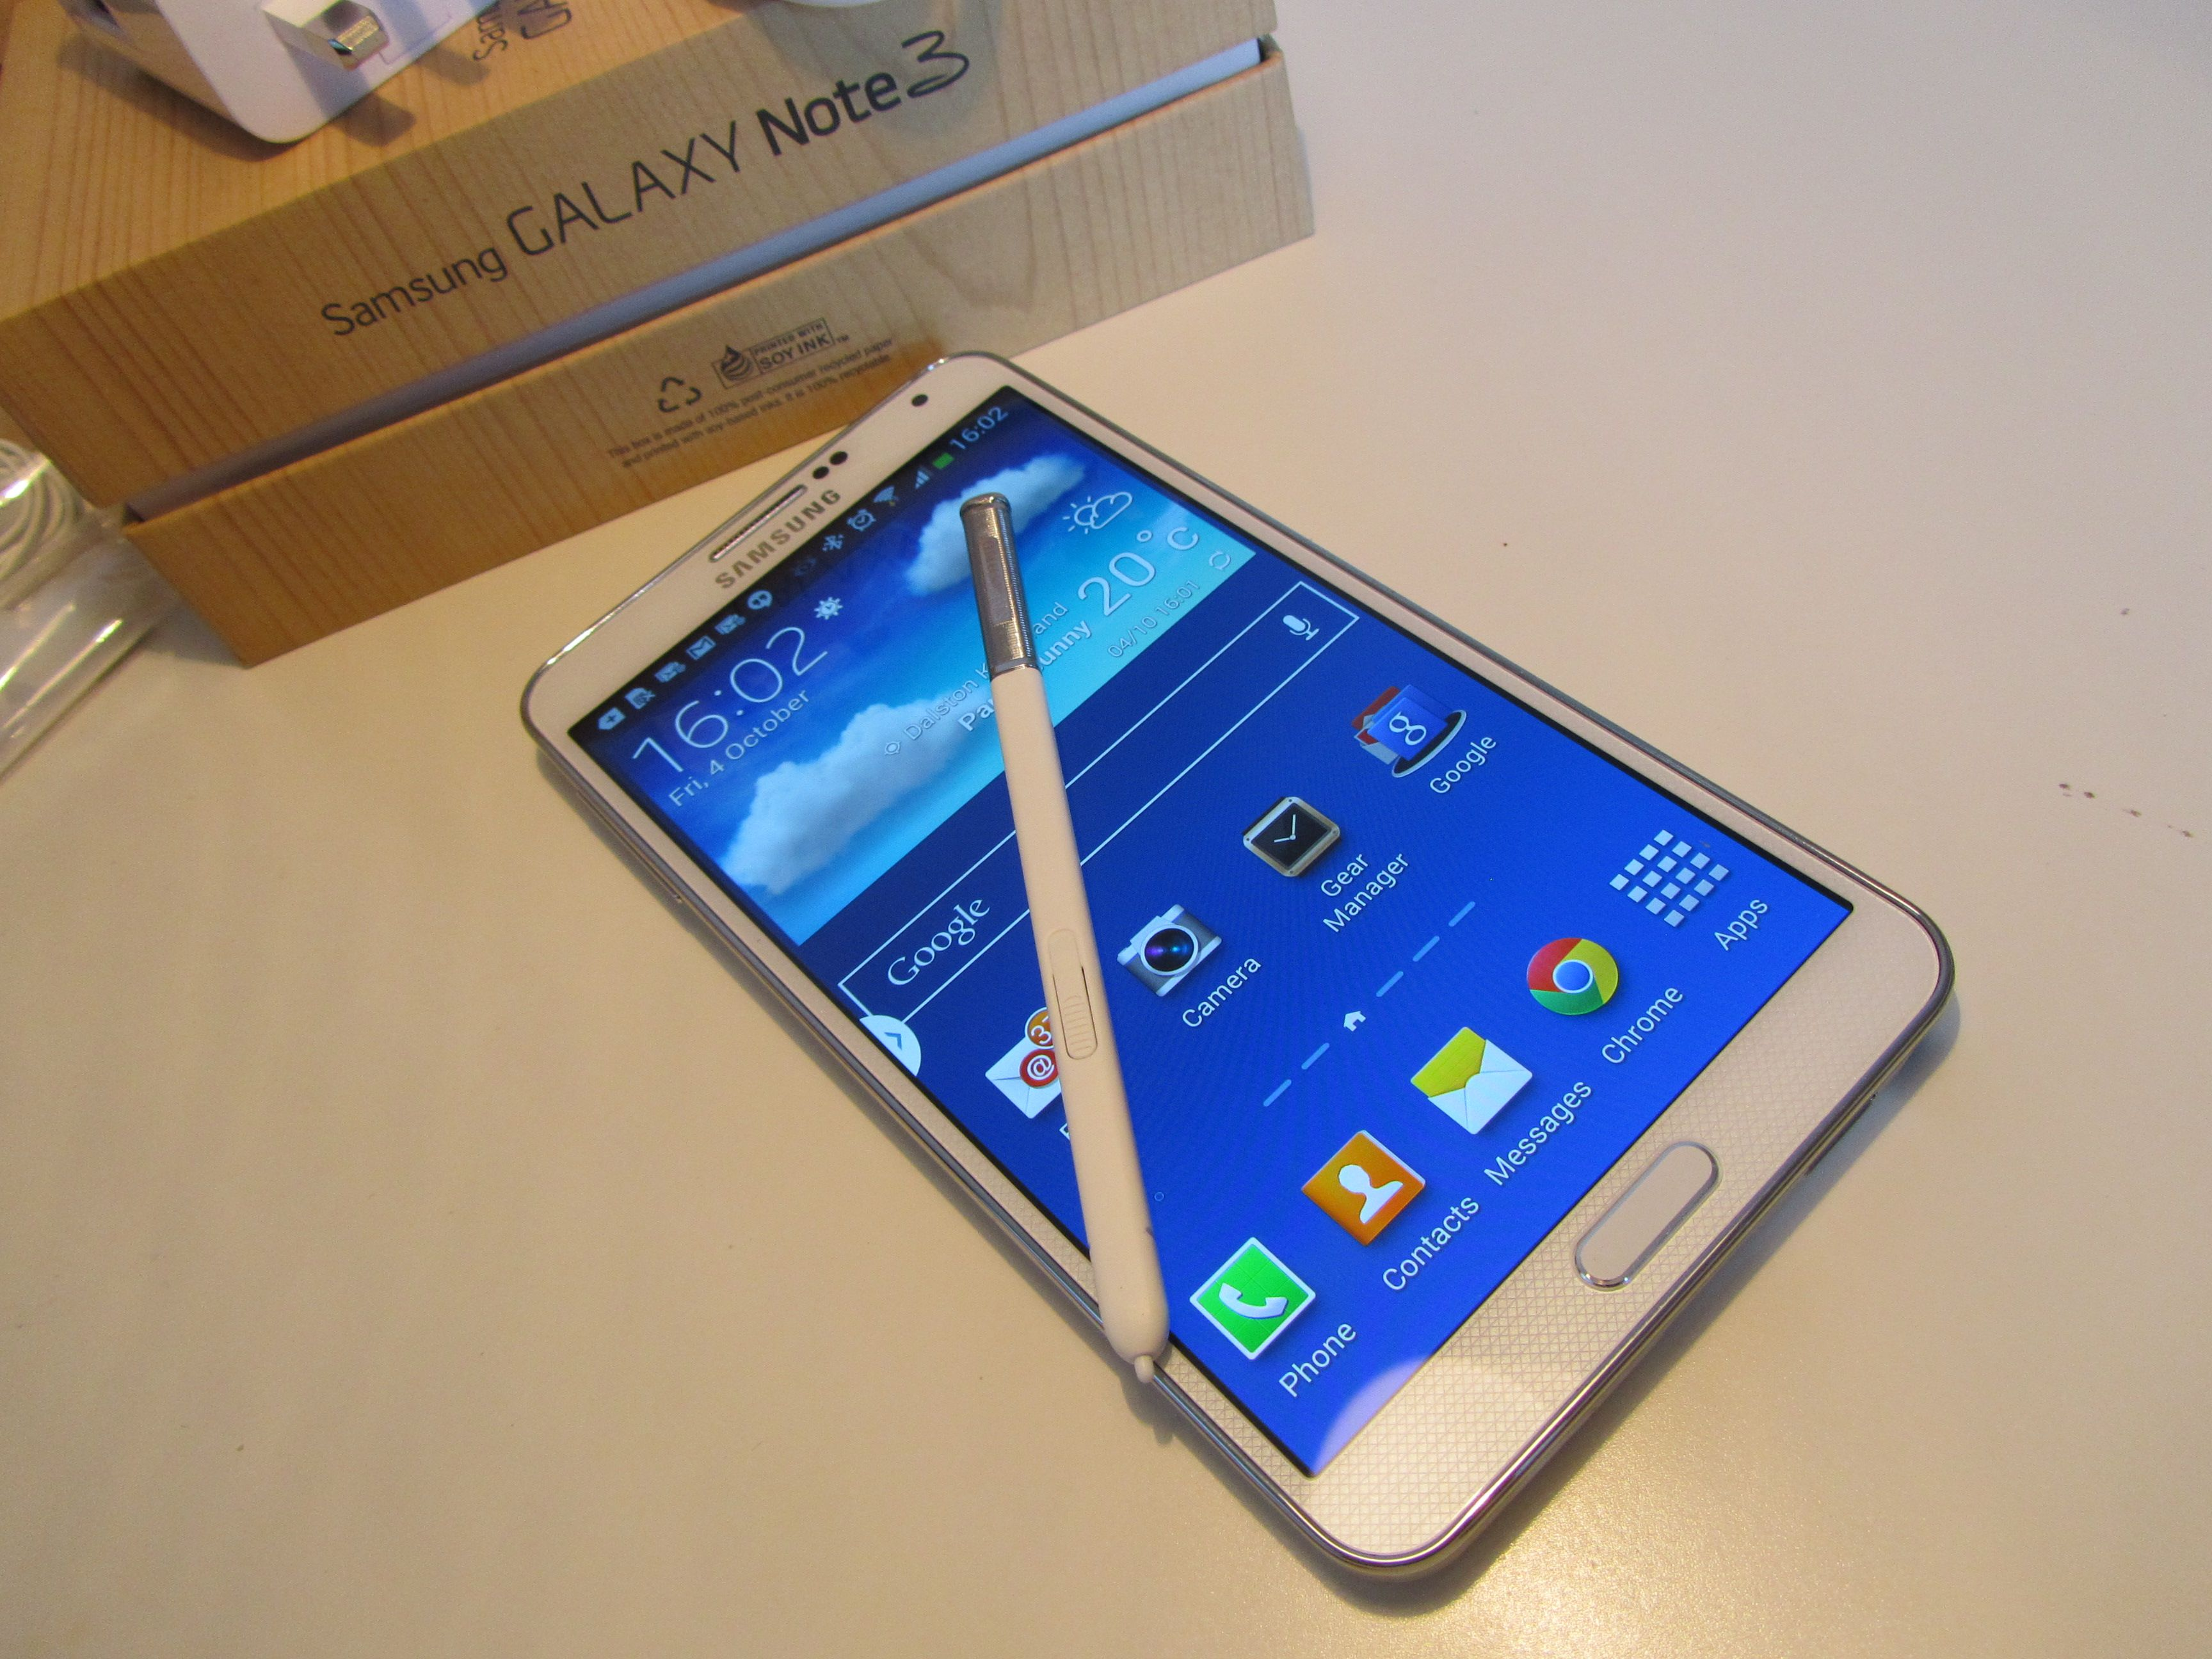 Samsung Galaxy Note 3 Review One Of The Best Android Handsets Money Can Buy If You Can Hold It Galaxy Samsung Galaxy Phones Samsung Galaxy Note